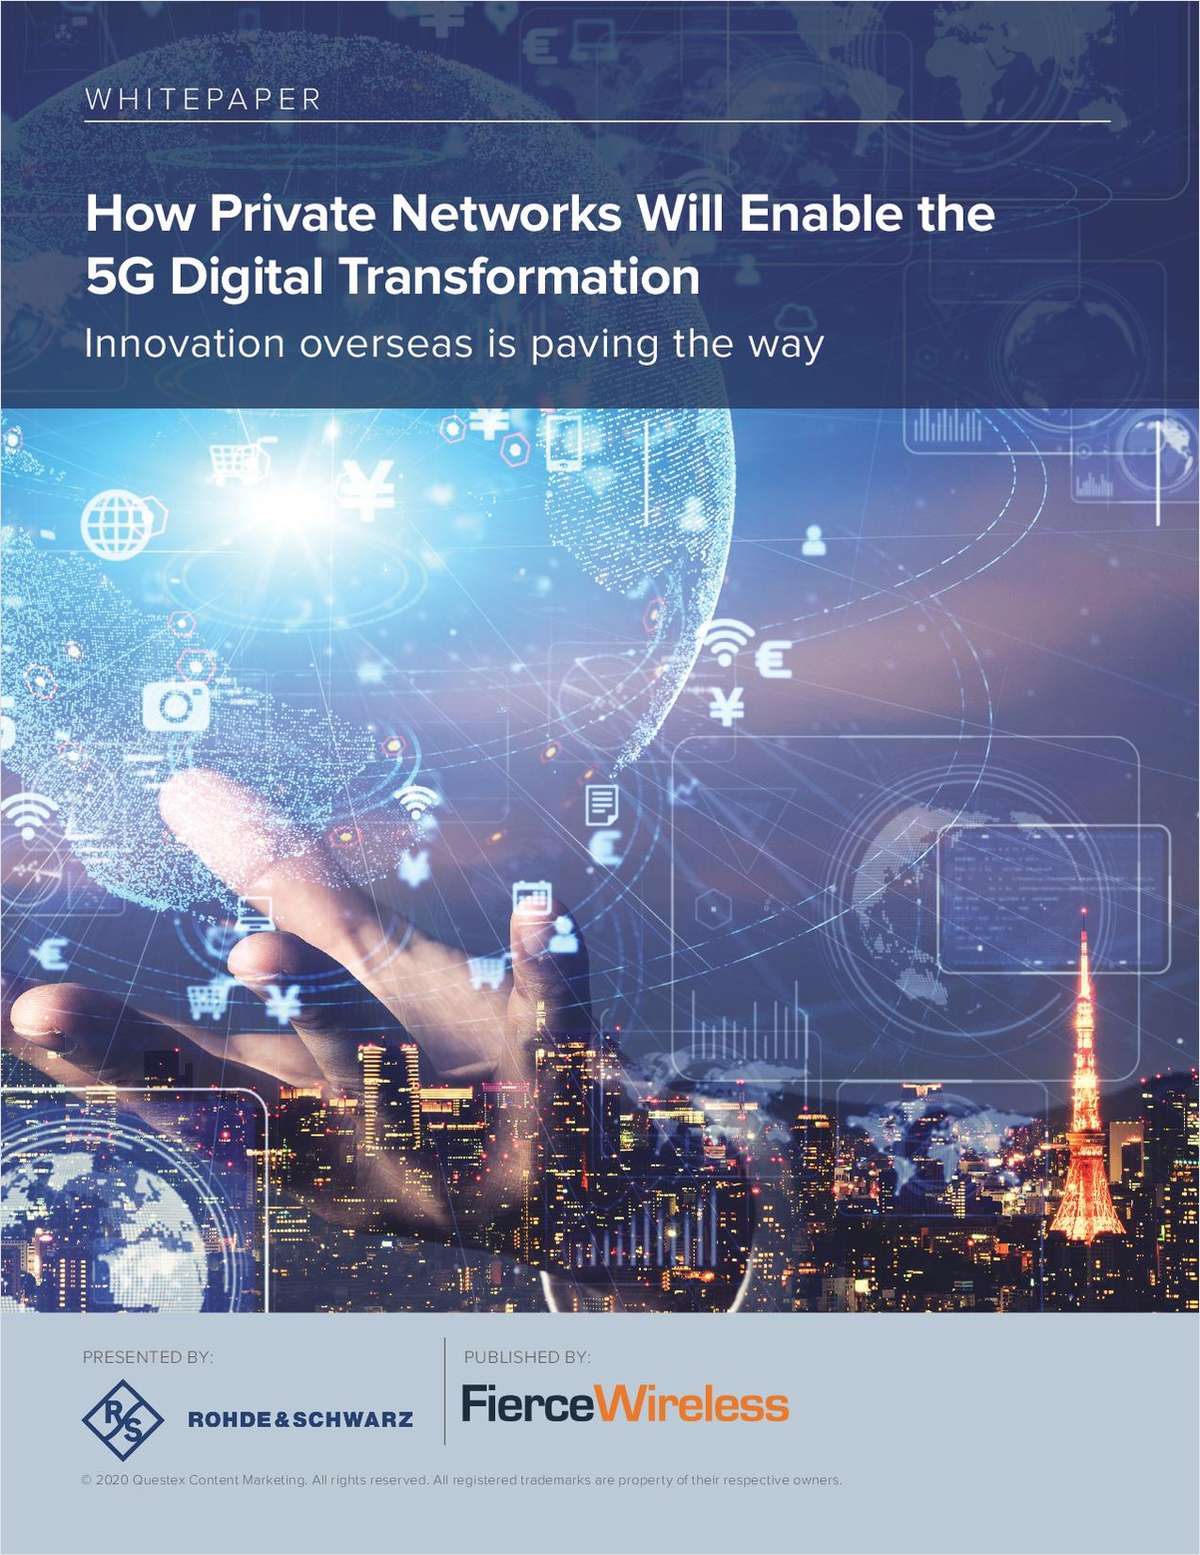 How Private Networks Will Enable the 5G Digital Transformation